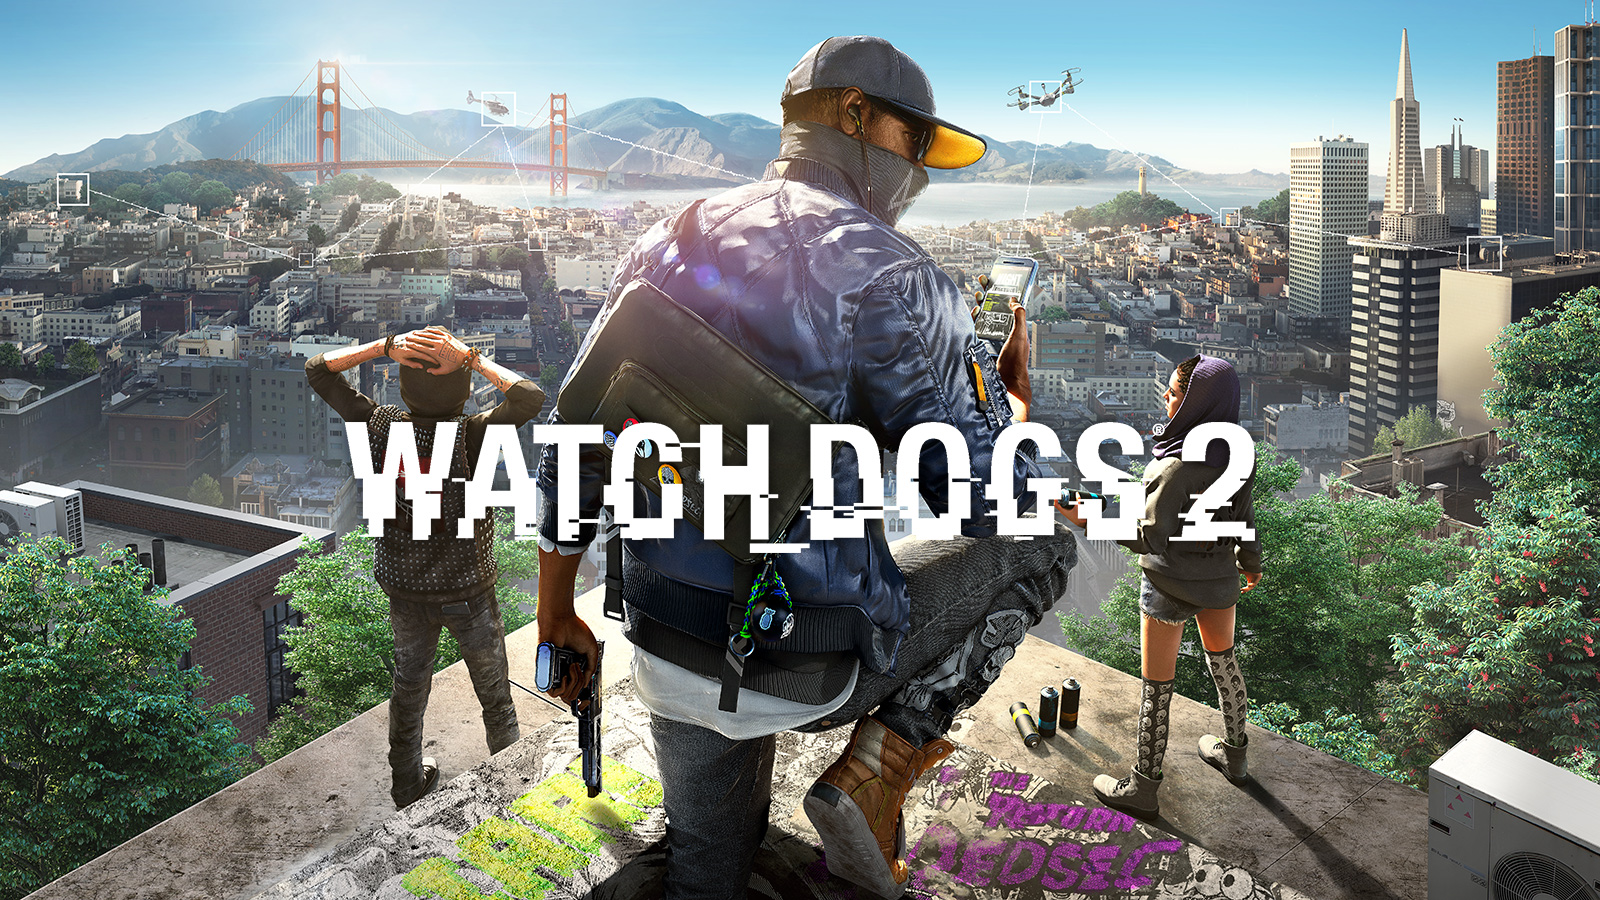 Promoçoes watch dogs 2